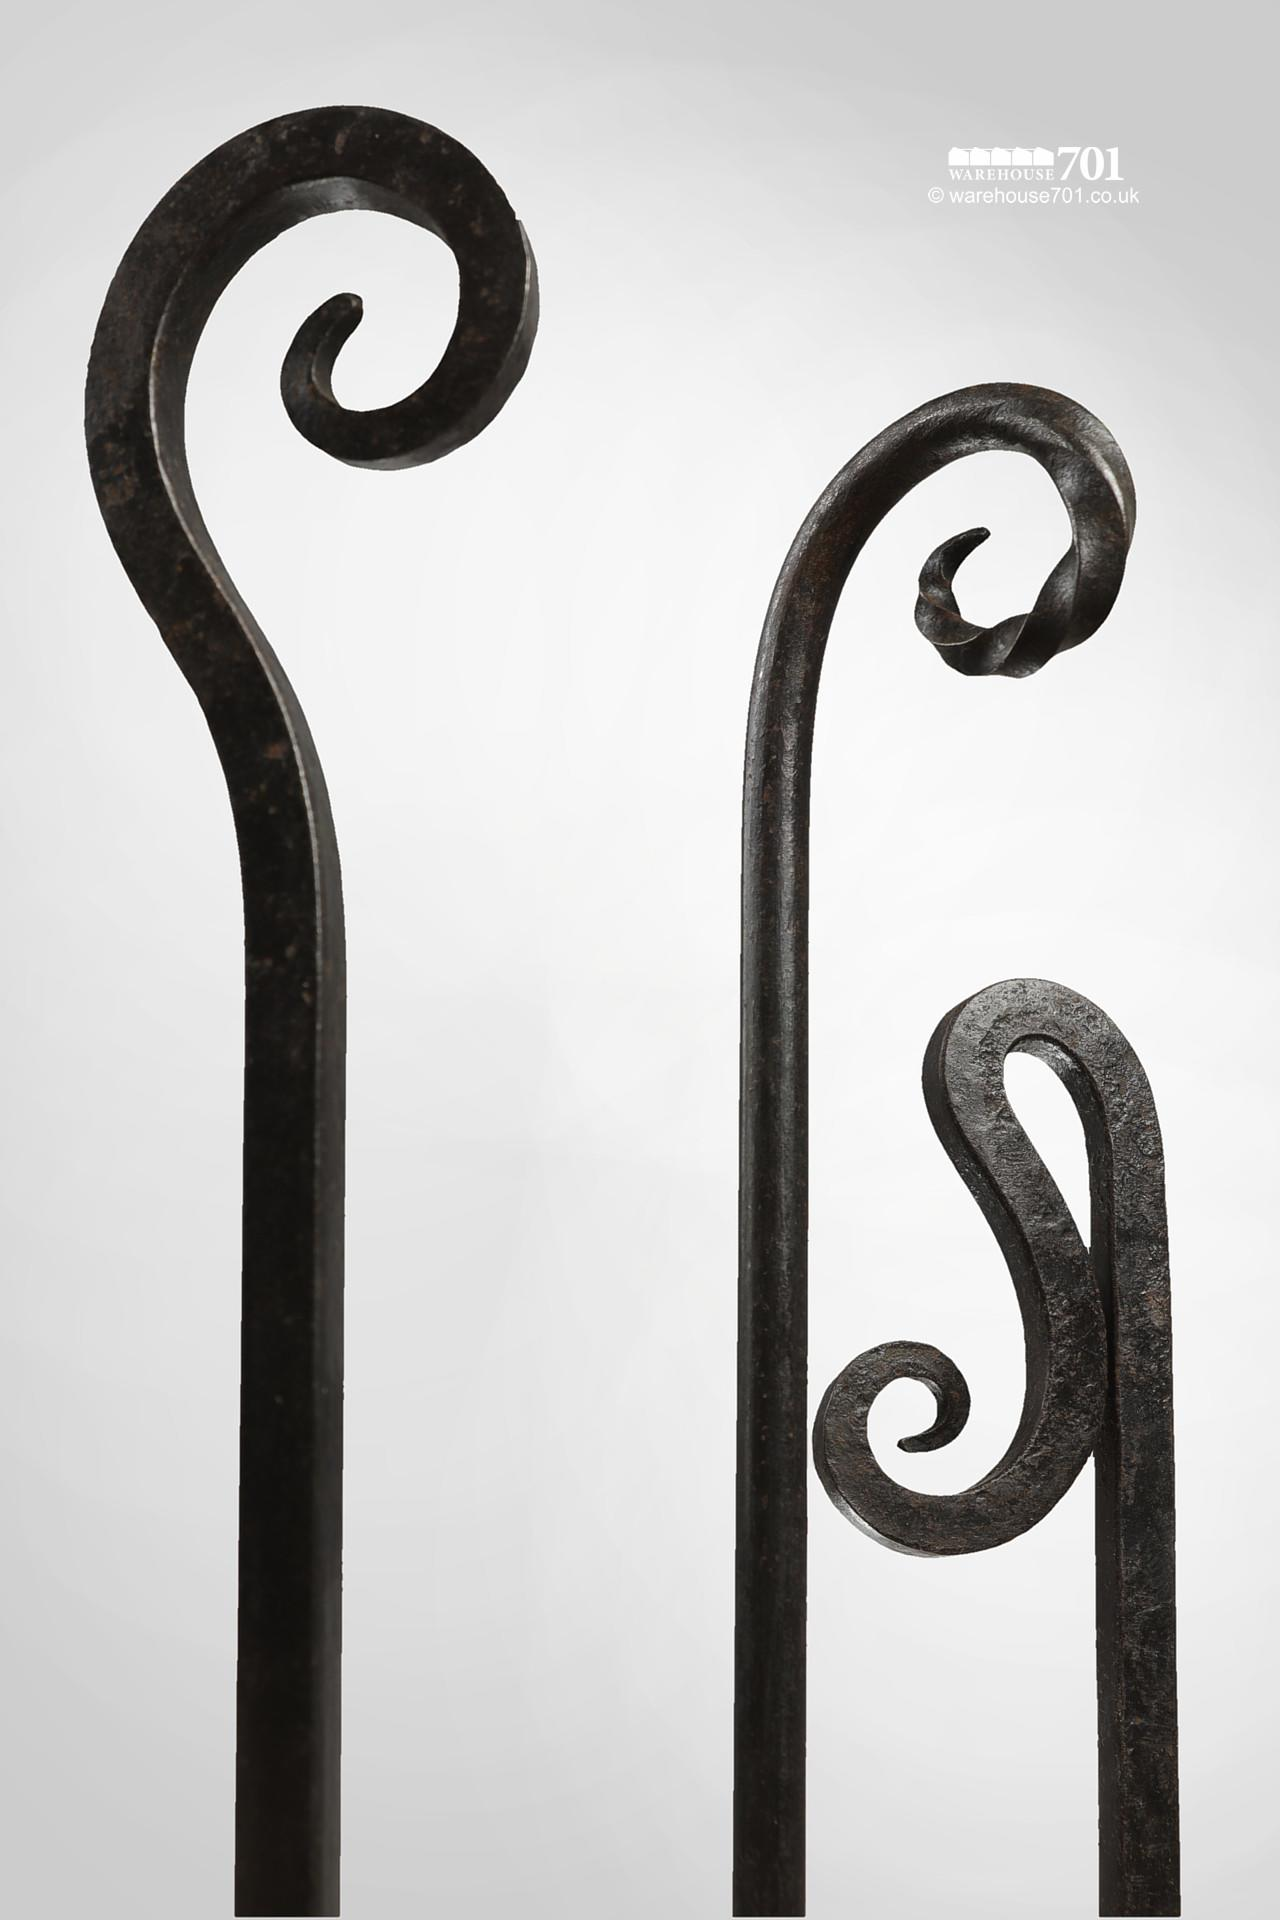 New Wrought Iron Blacksmith Made Decorative Fire Pokers #2